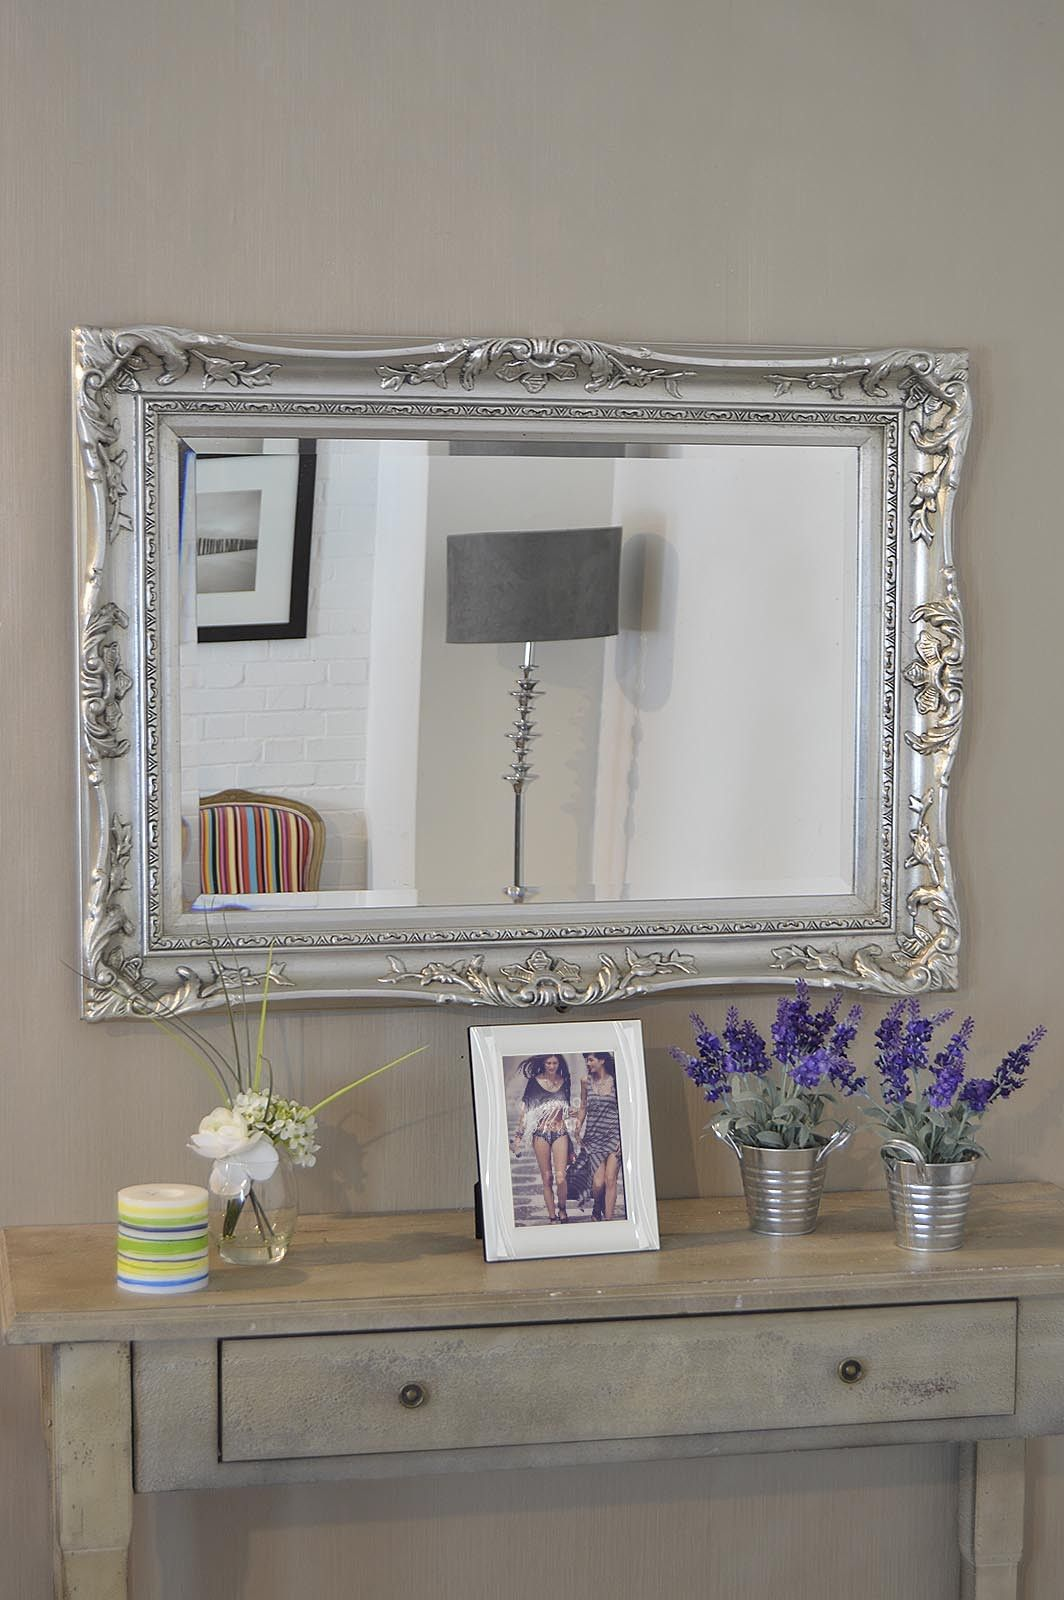 3Ft2 X 2Ft4 97x71cm Large Silver Ornate Antique Style Big Wall ...